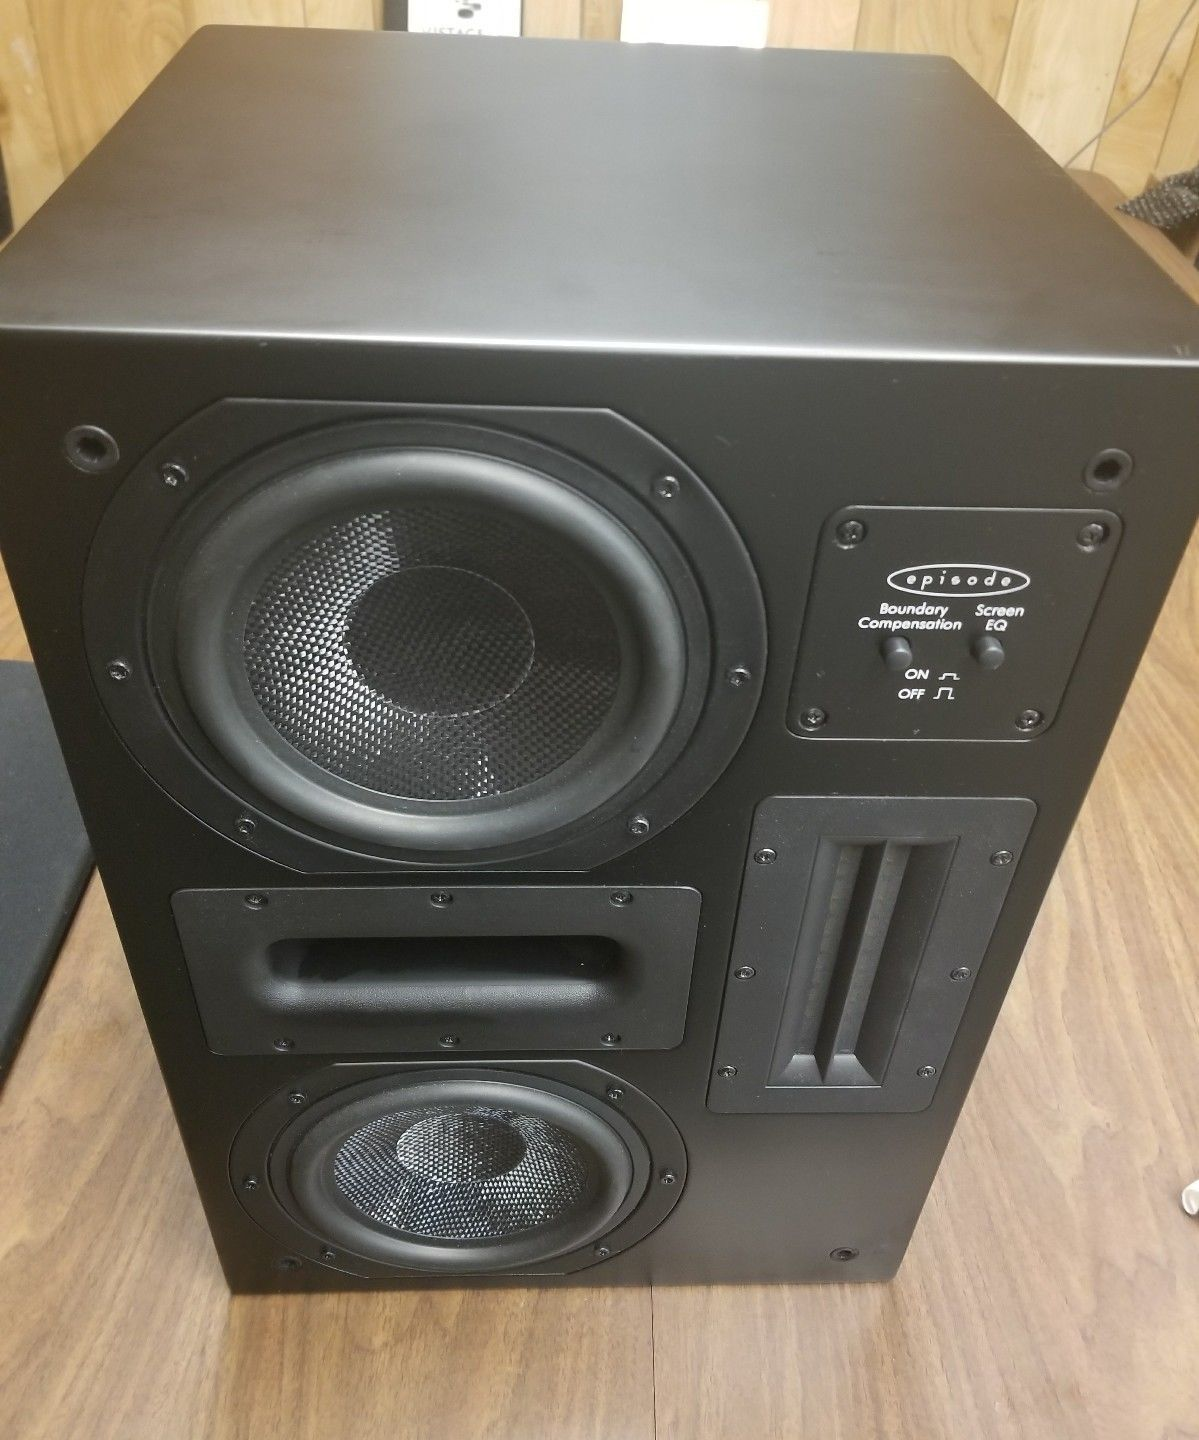 Episode HT-650LCR Hi-End Audiophile Speakers and 50 similar items